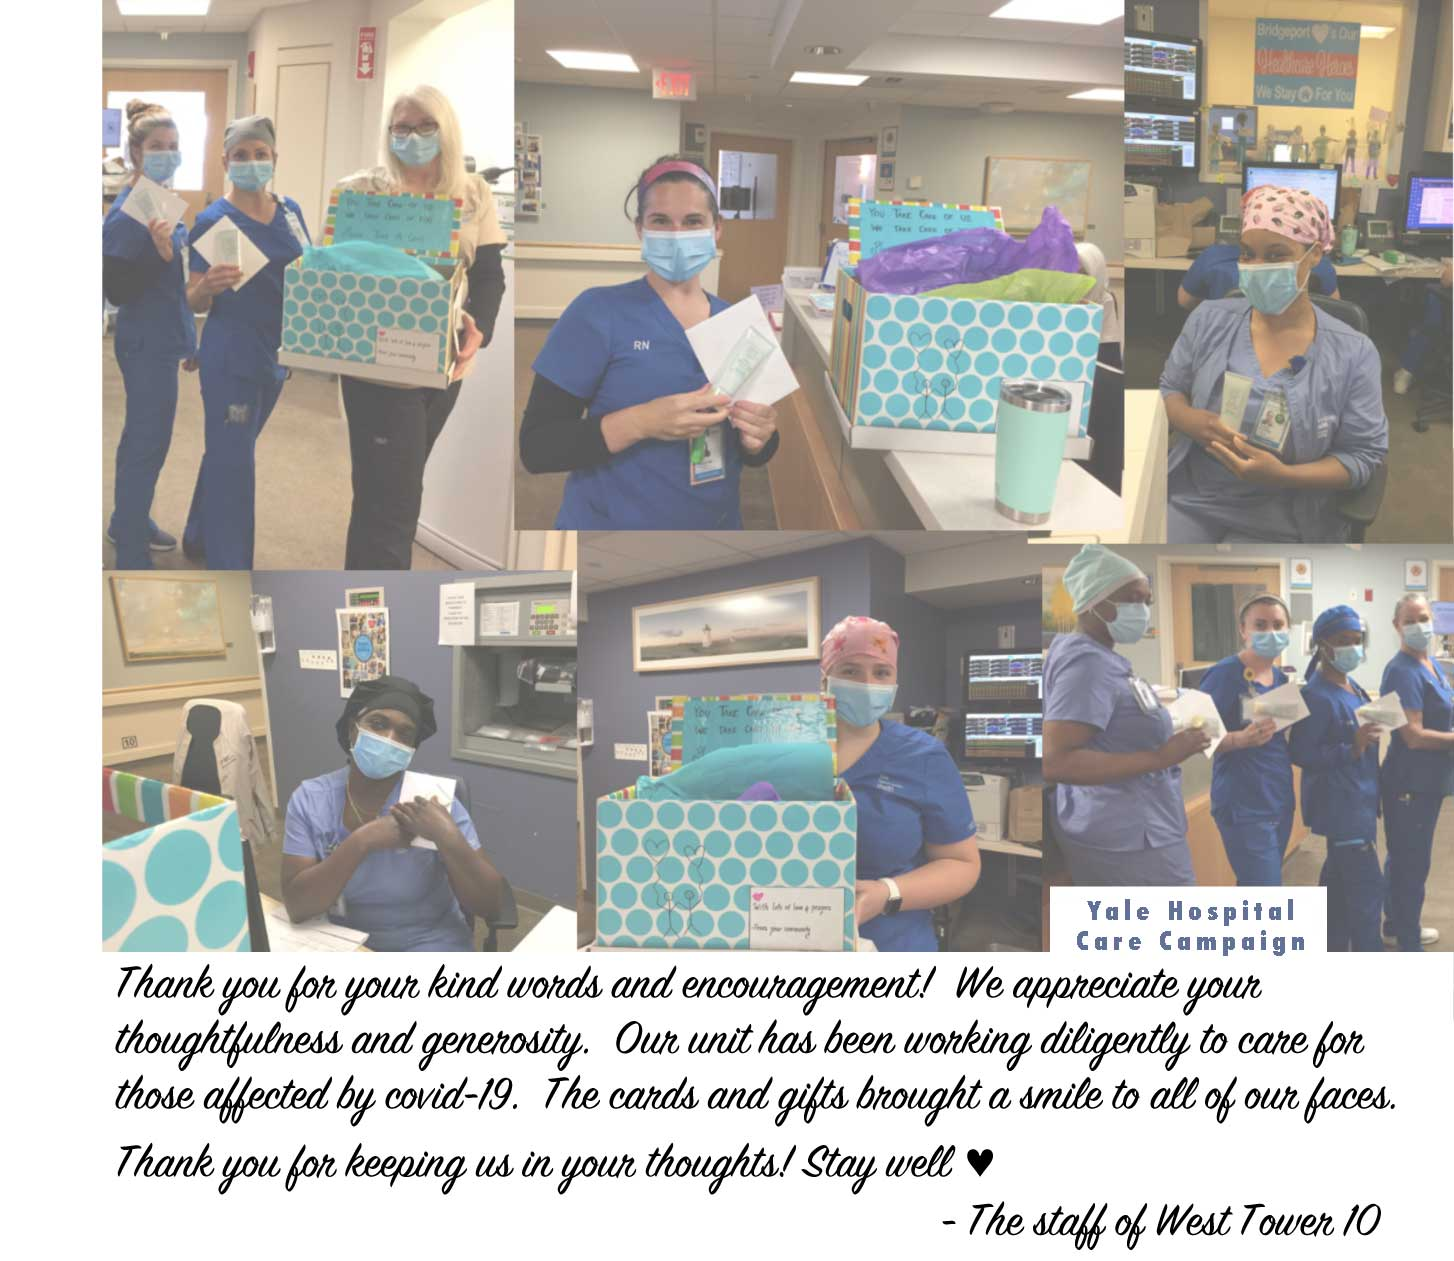 Yale Hospital Care Campaign Thank you